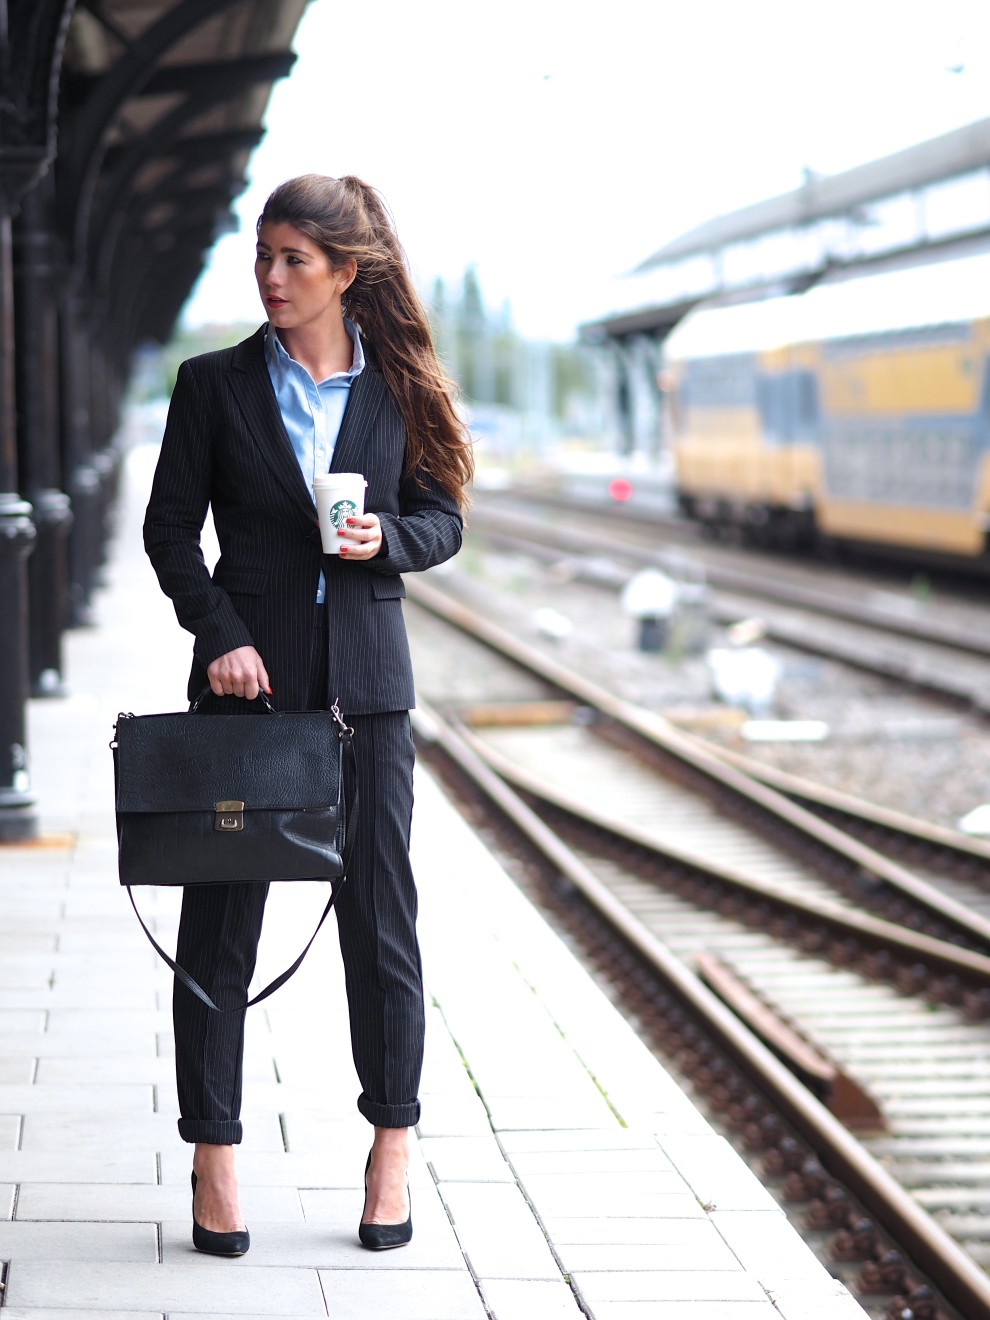 the suit trends fashion vero moda fashionblogger business OOTD